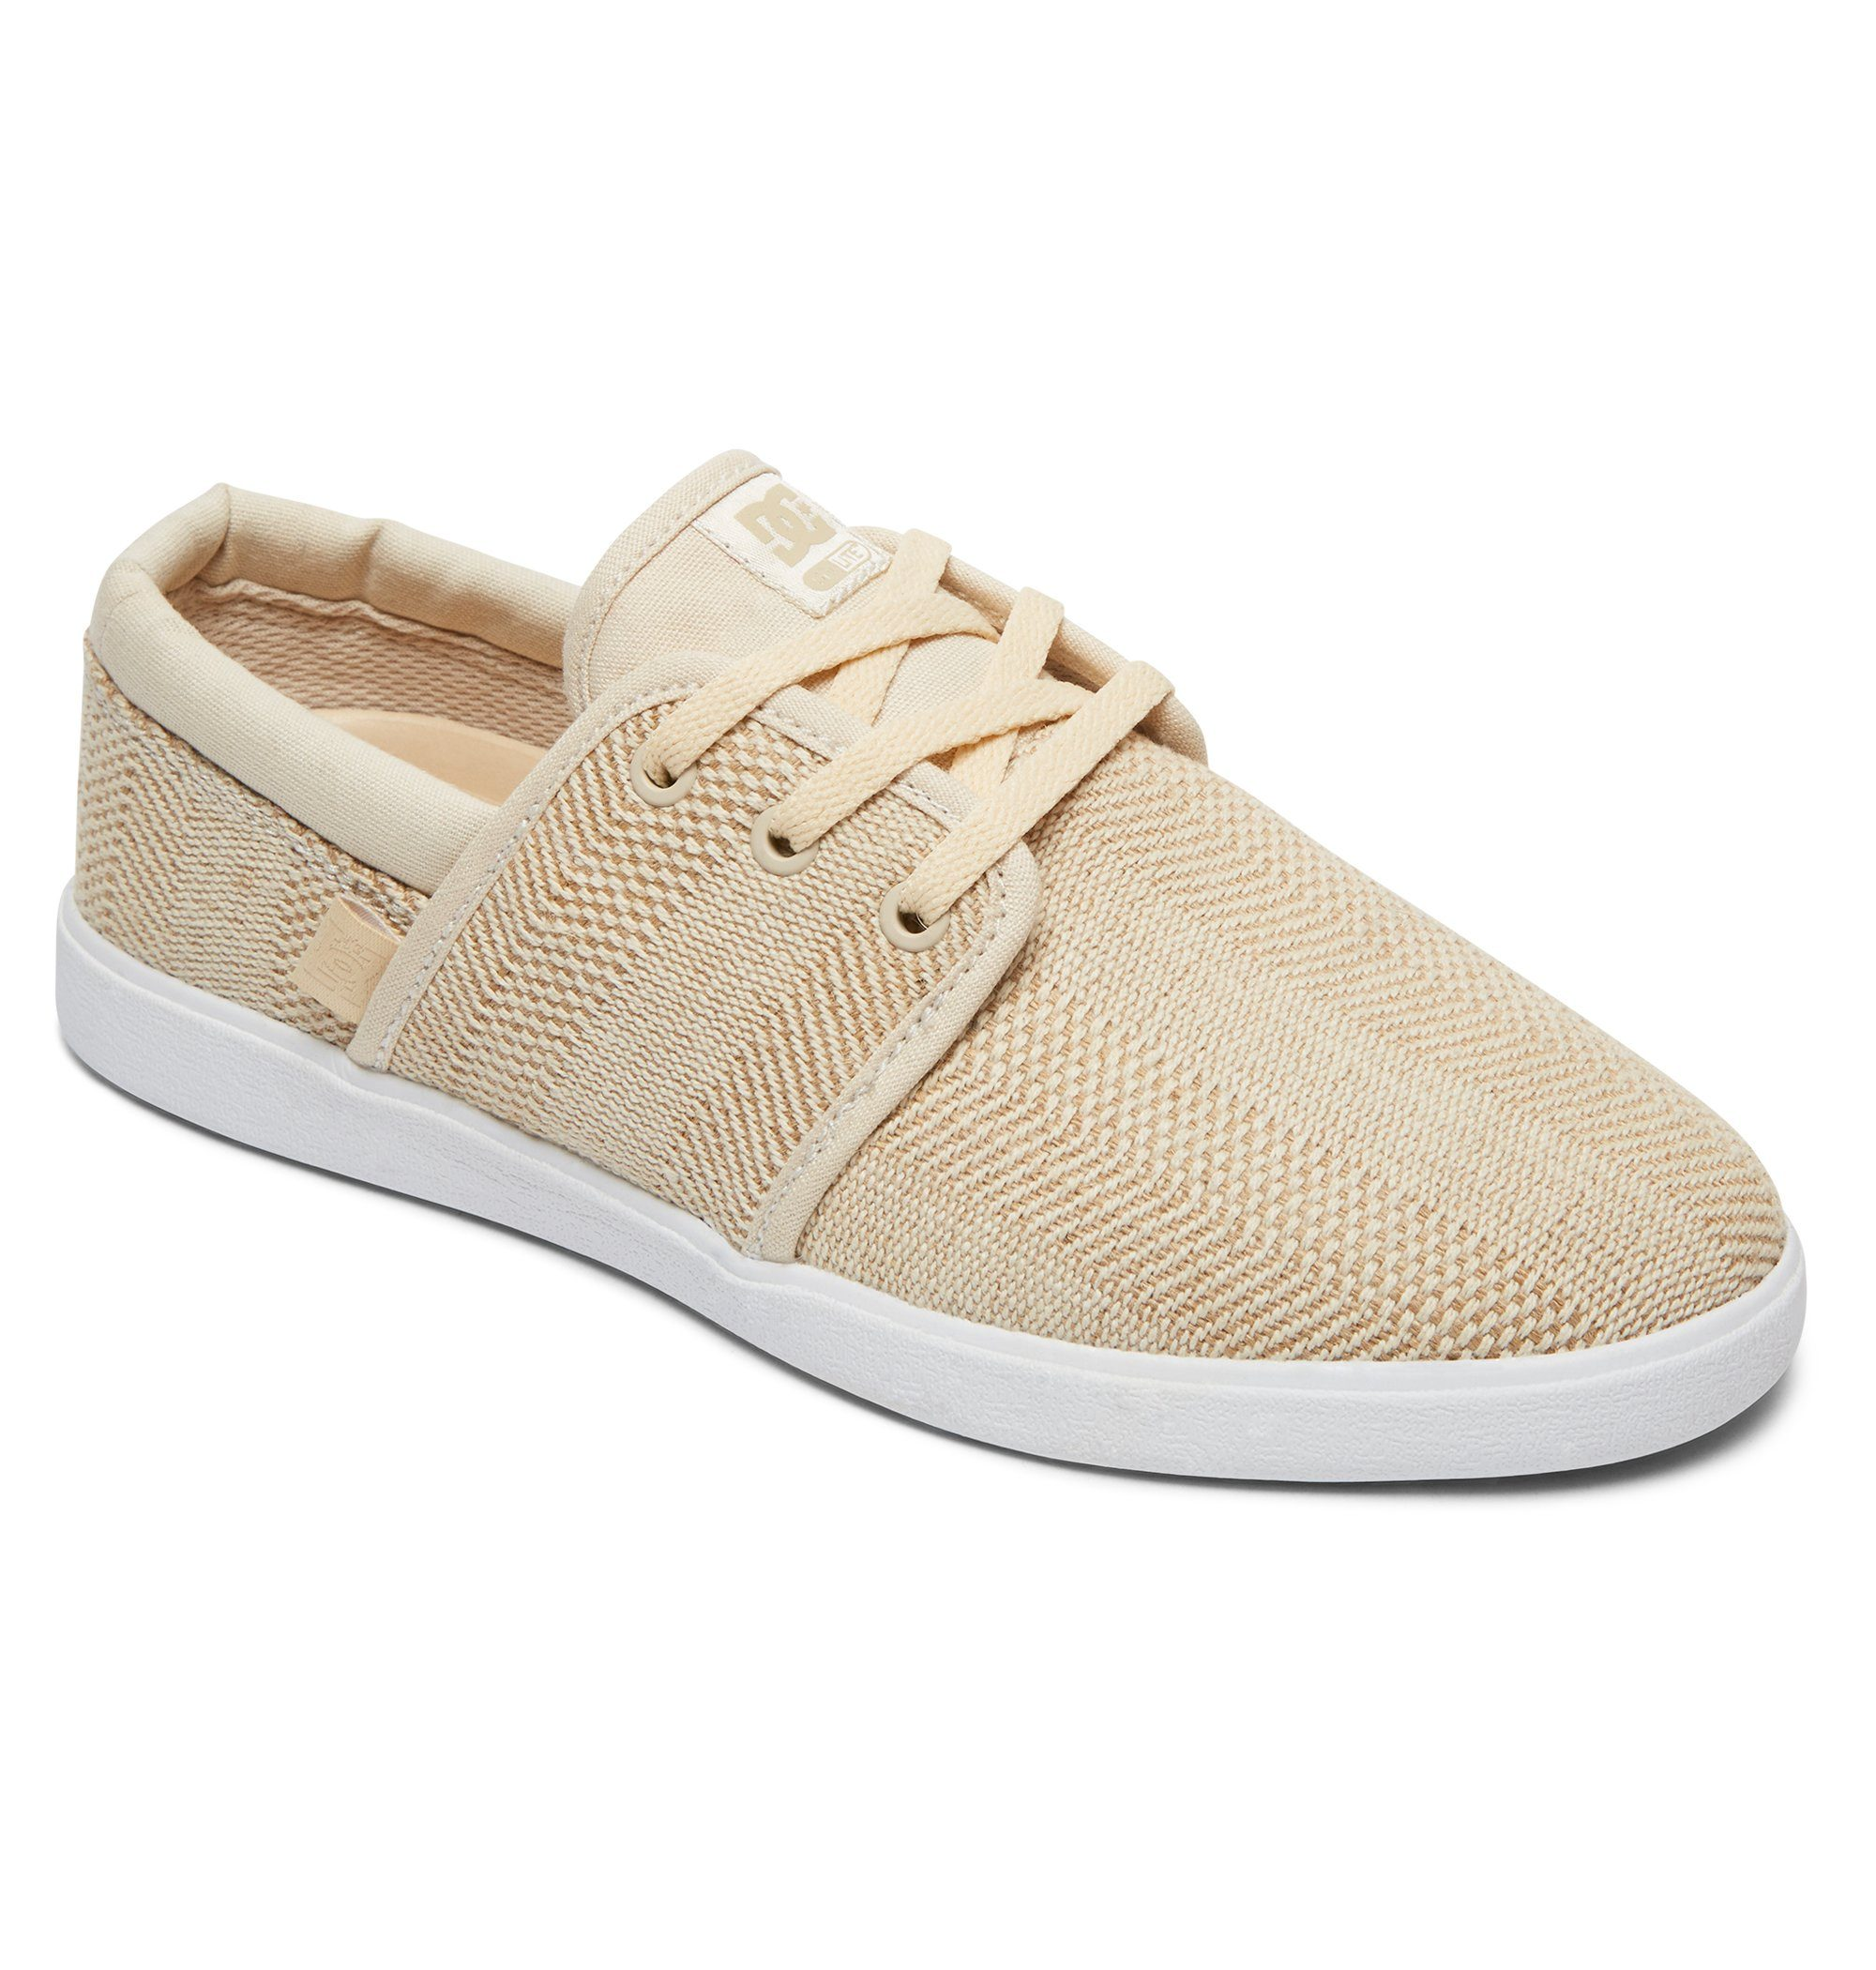 Chaussures Chaussures Beige Port Dc xZw5XBL